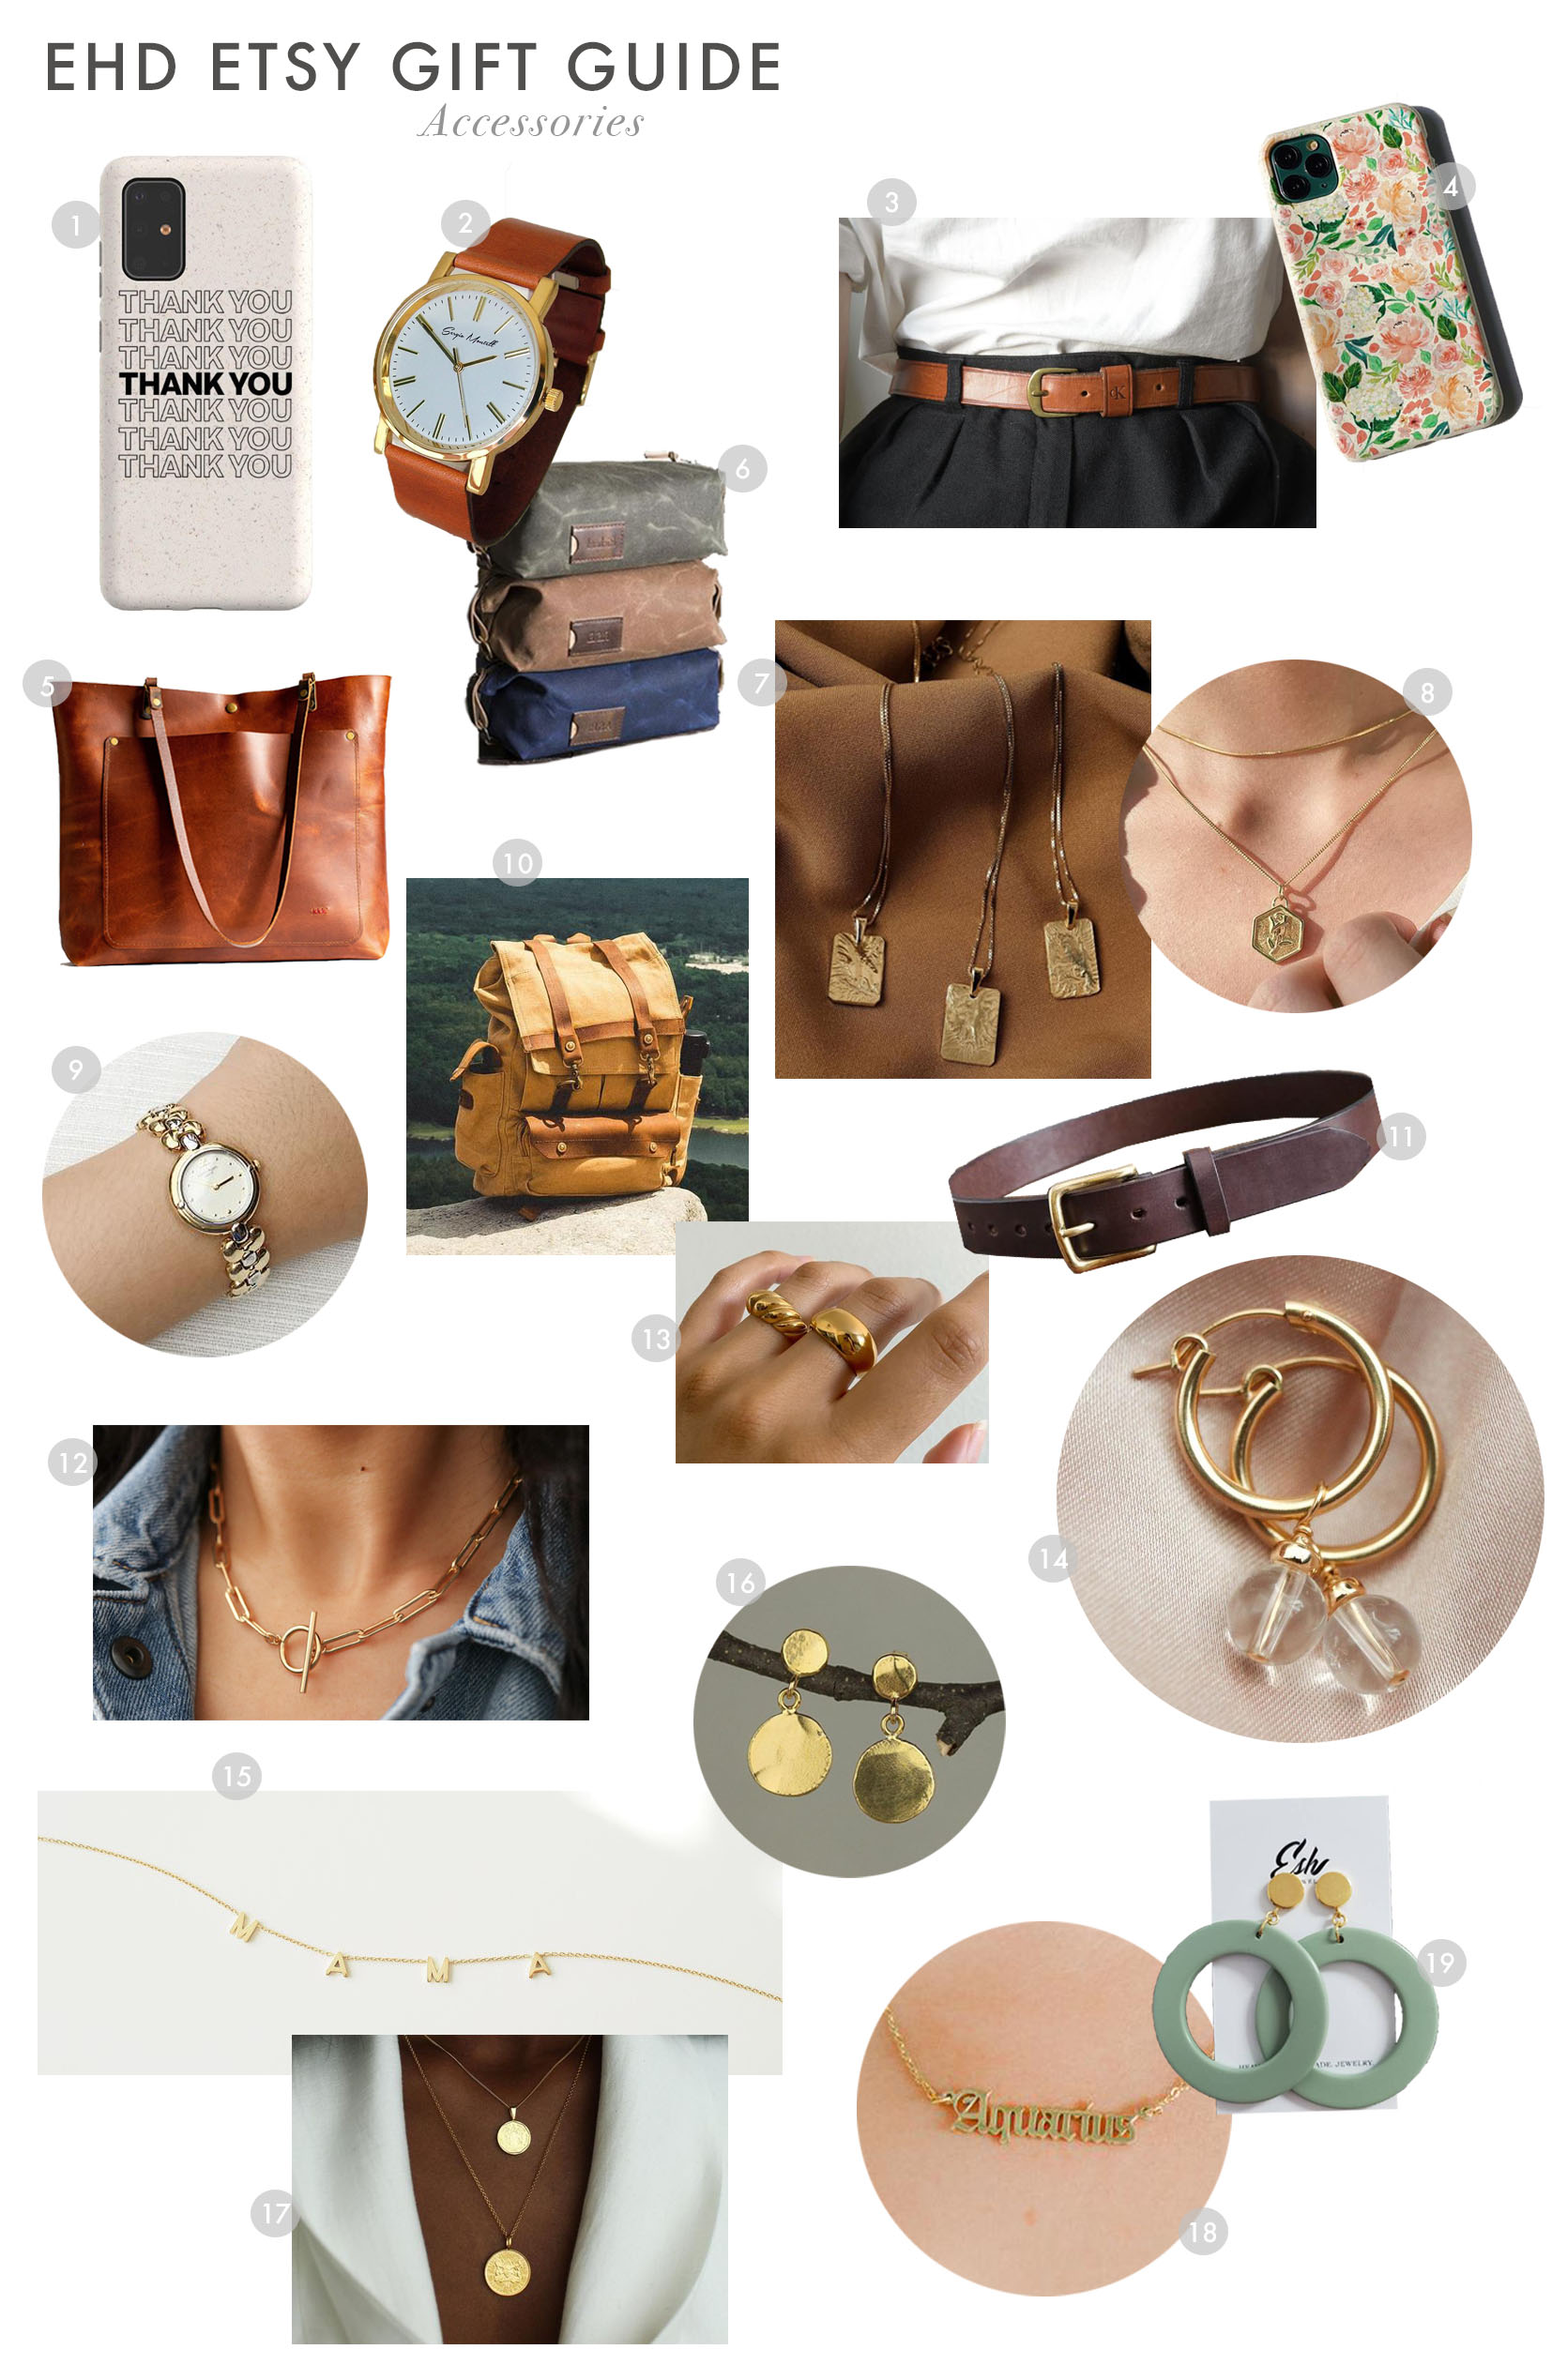 2020 Gift Guide: 82 Of Our Top Picks From Etsy (Everything From Fashion To Furniture)